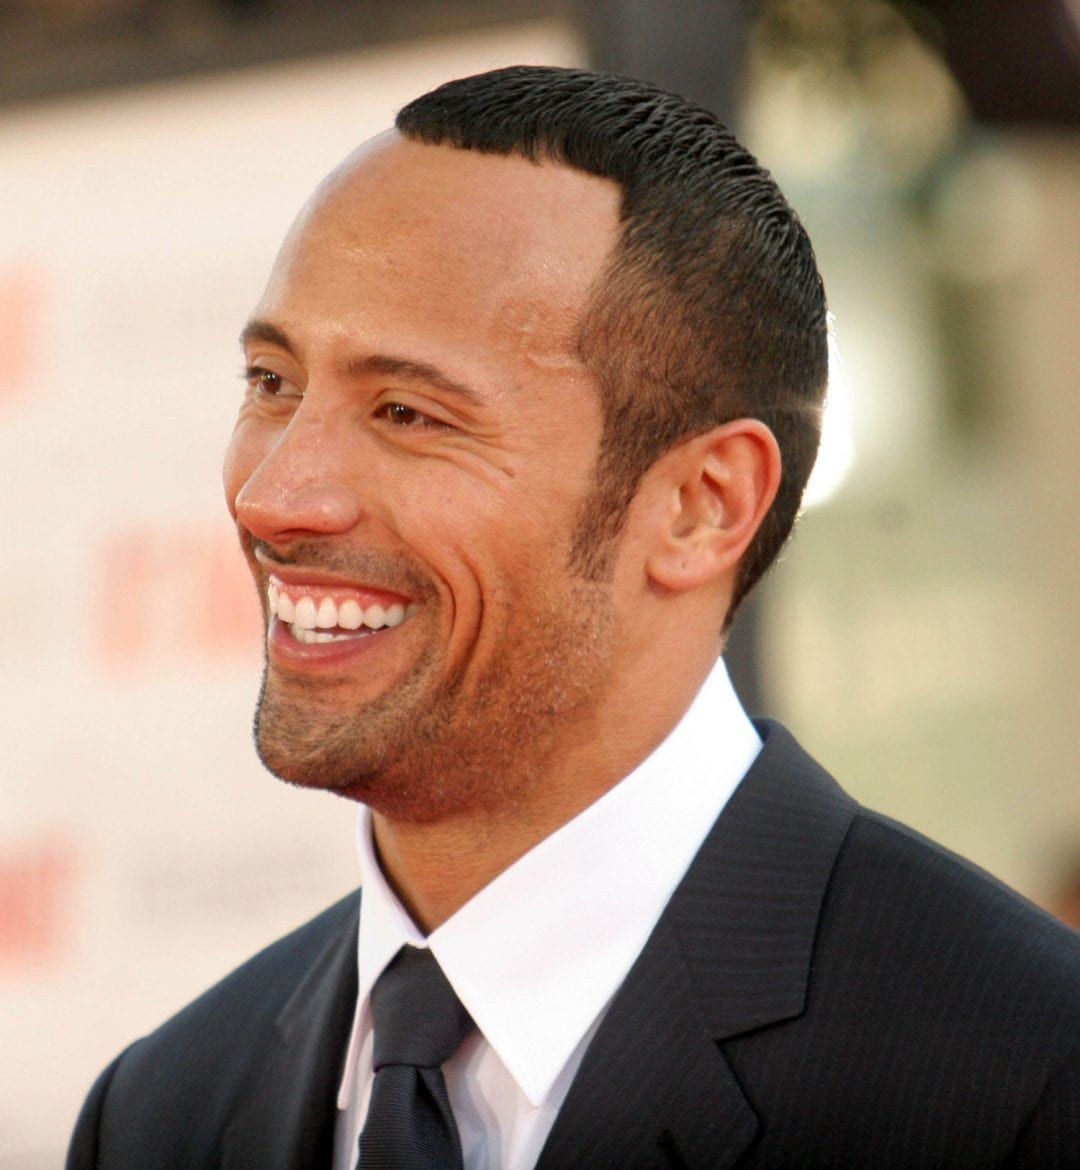 The rock used to look like he had stolen his hair from a man with a much smaller head.